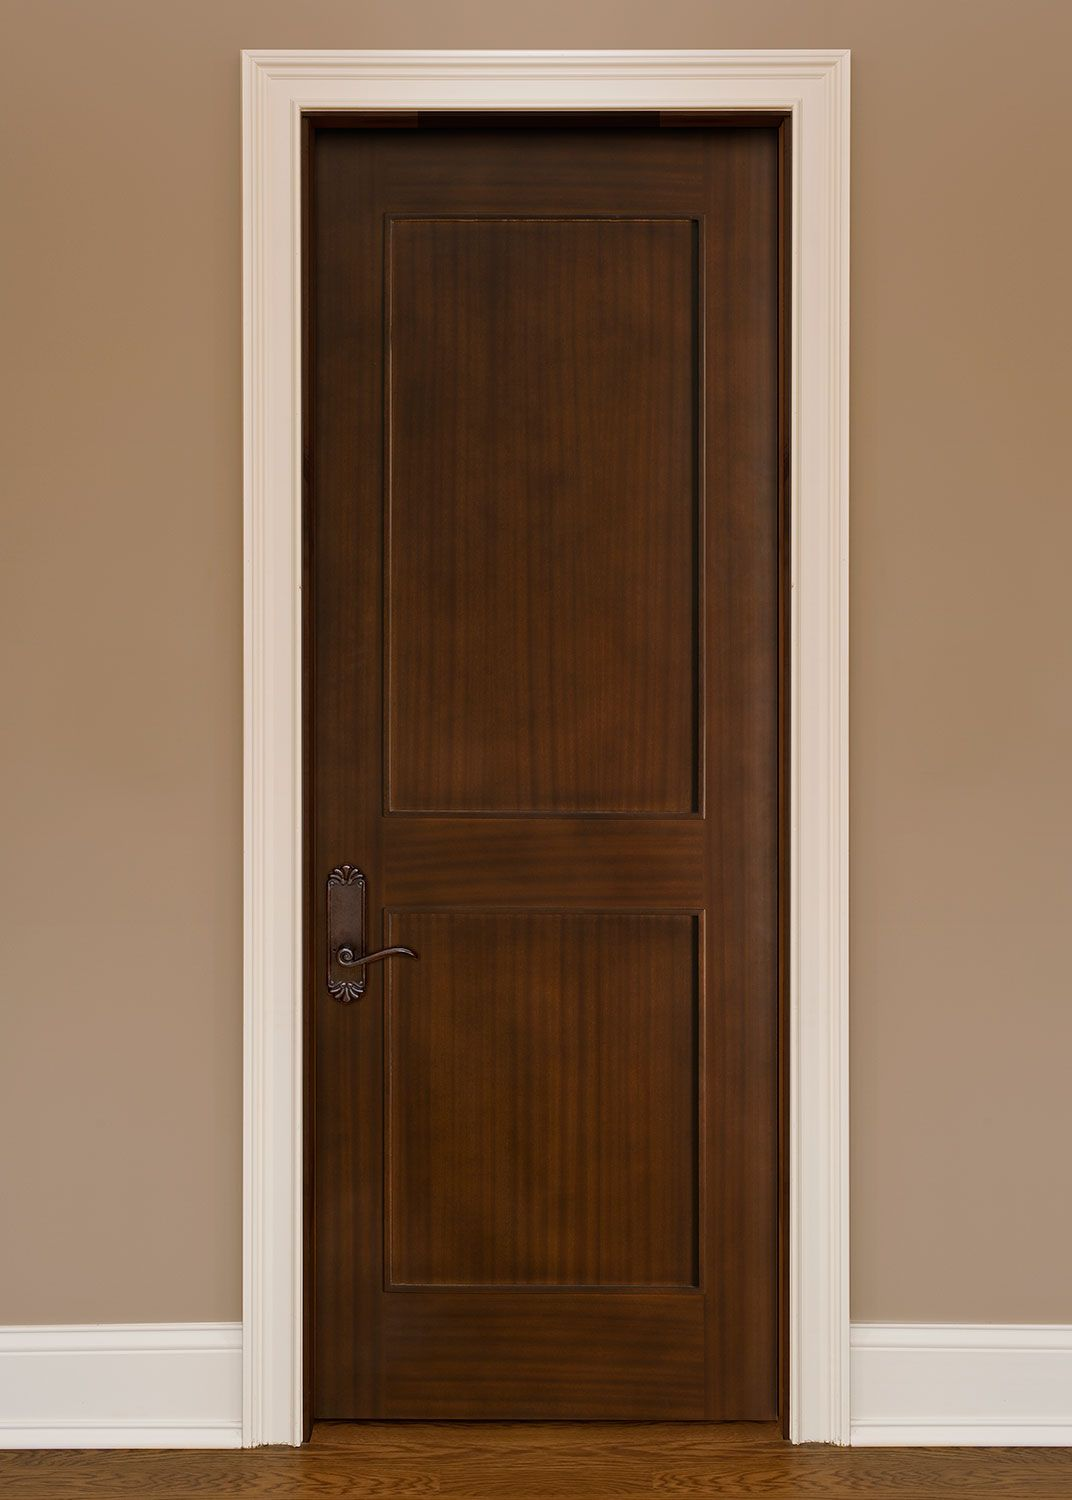 Interior doors yahoo image search results home remodel ideas unique designs expert craftsmanship and superior quality hardwoods for supreme customer satisfaction custom solid wood interior doors traditional planetlyrics Image collections